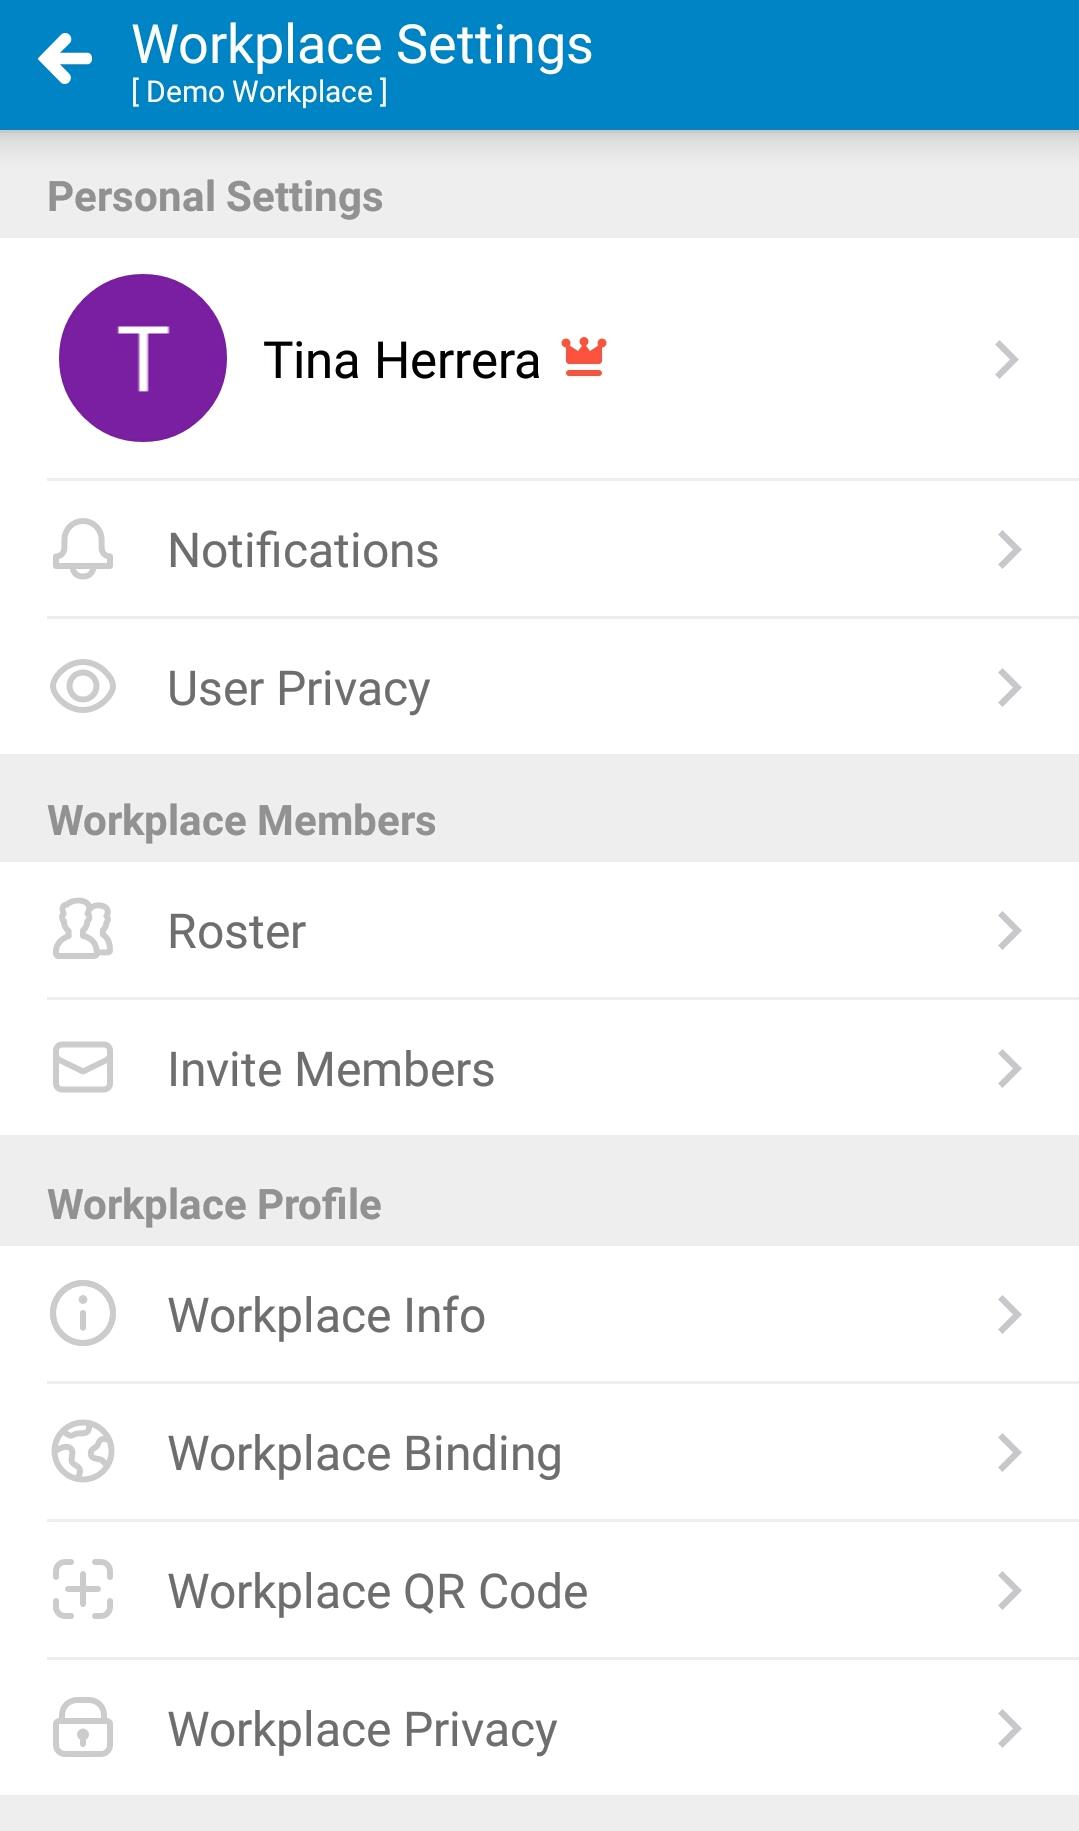 Mobile-Workplace Settings 01